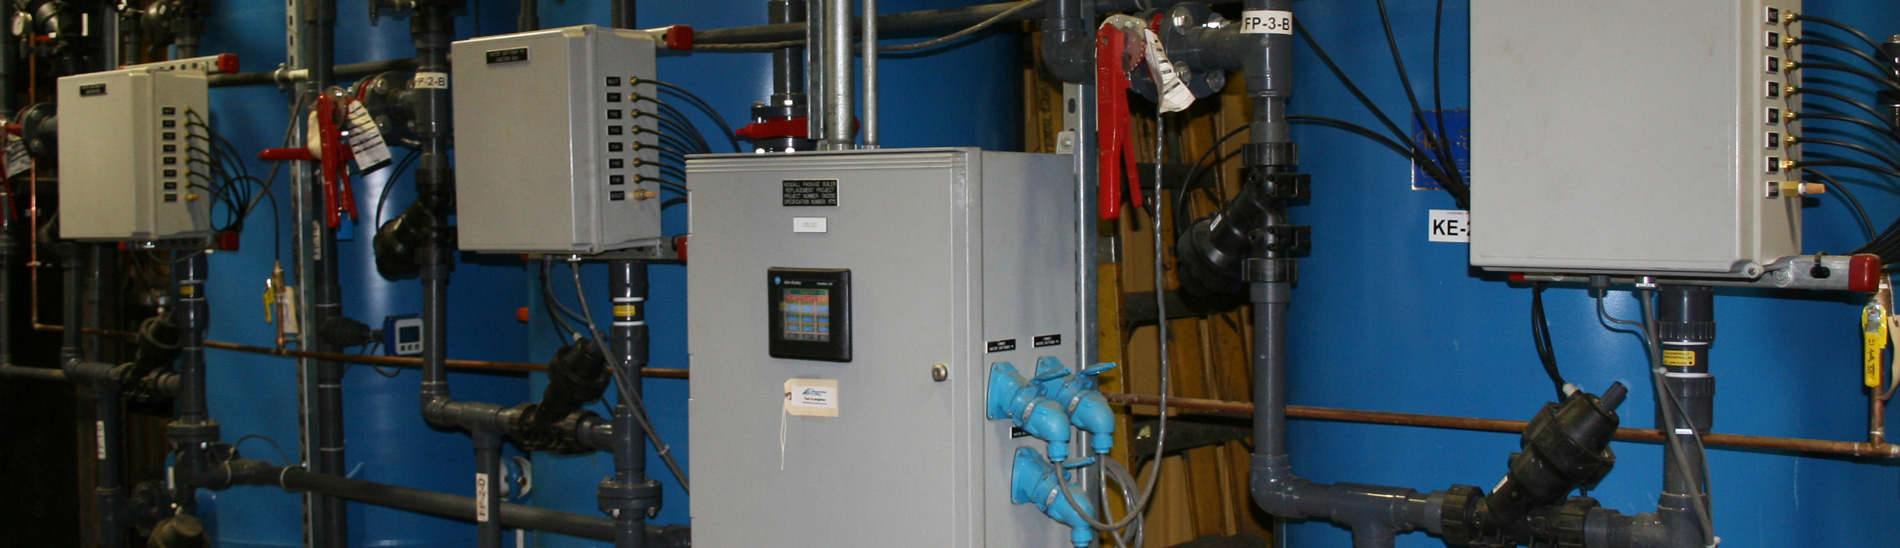 Electronic Water Softener >> Water Softener Systems | Nalco PTS